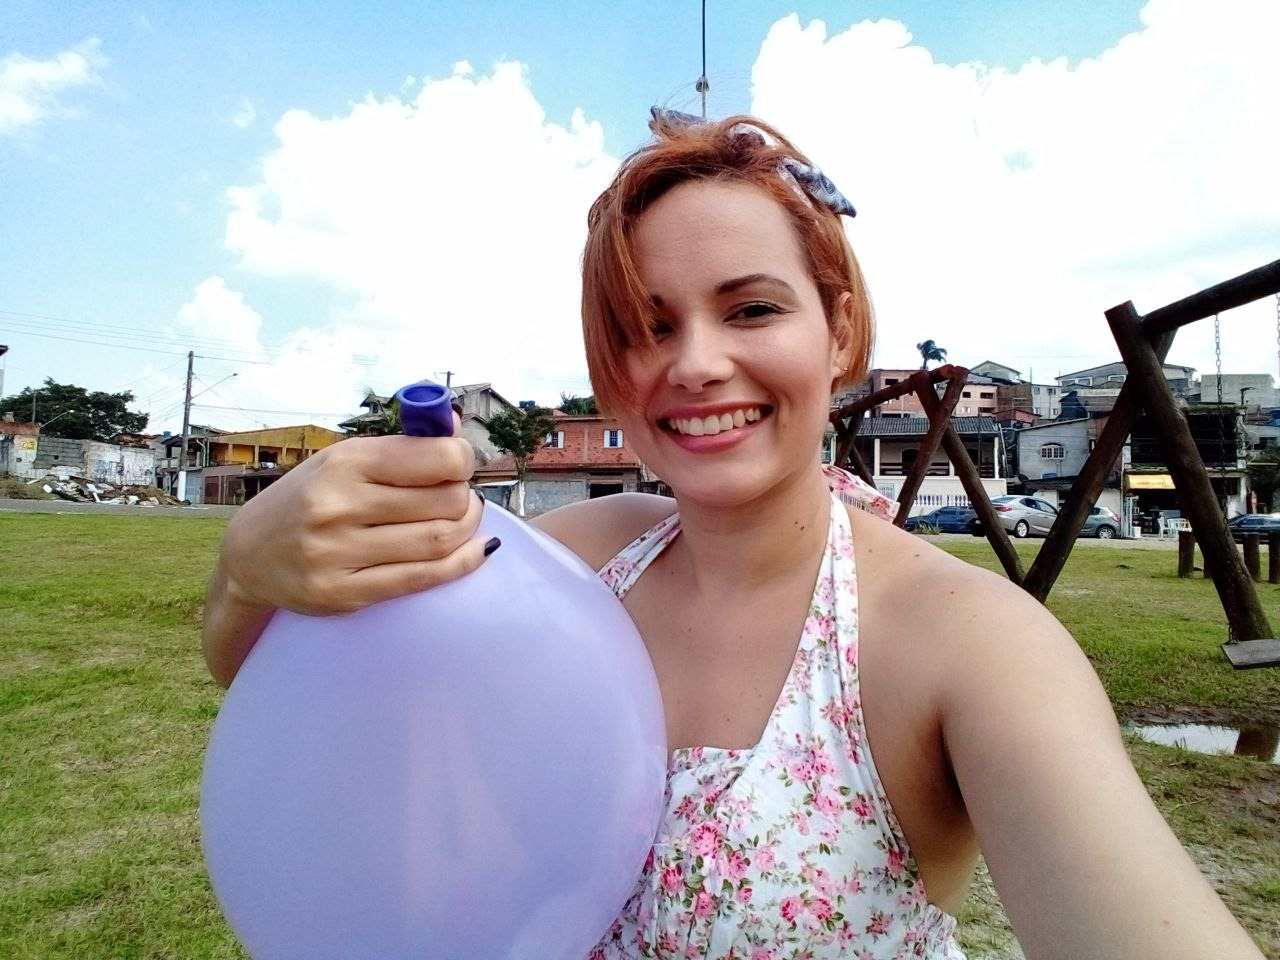 Balloon popping outside